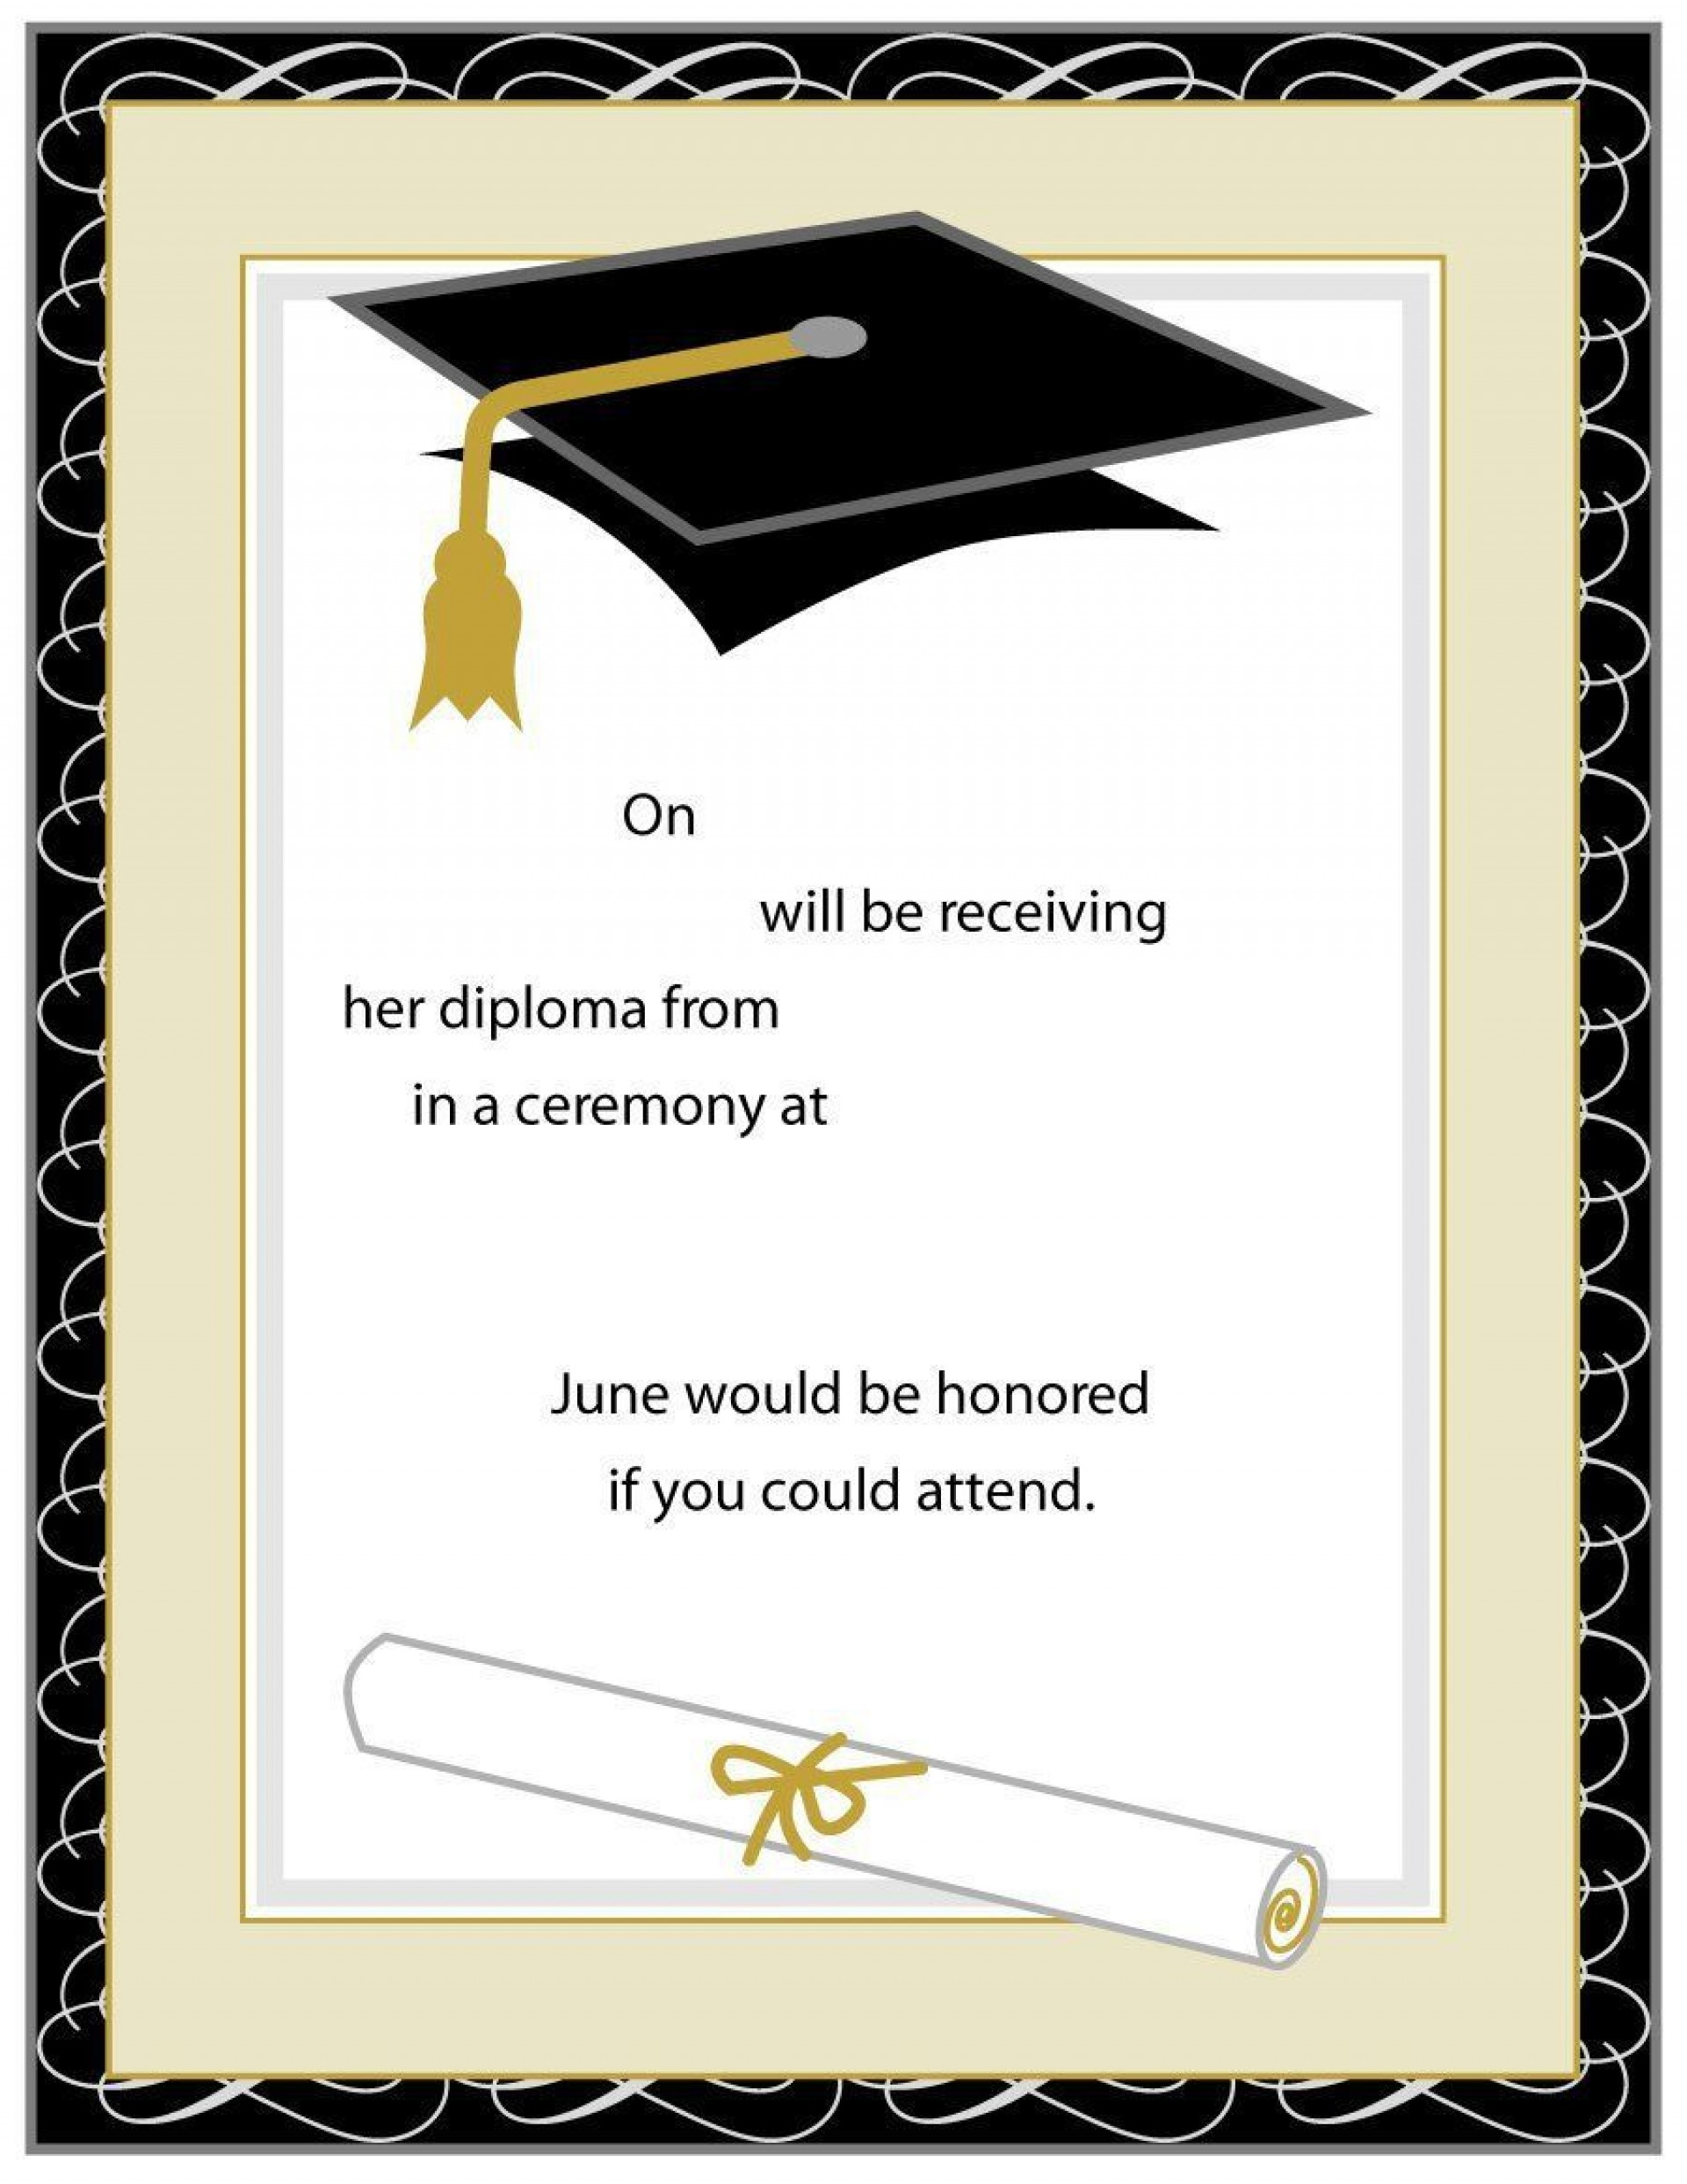 007 Archaicawful Free Graduation Announcement Template Example  Templates For Word Microsoft1920